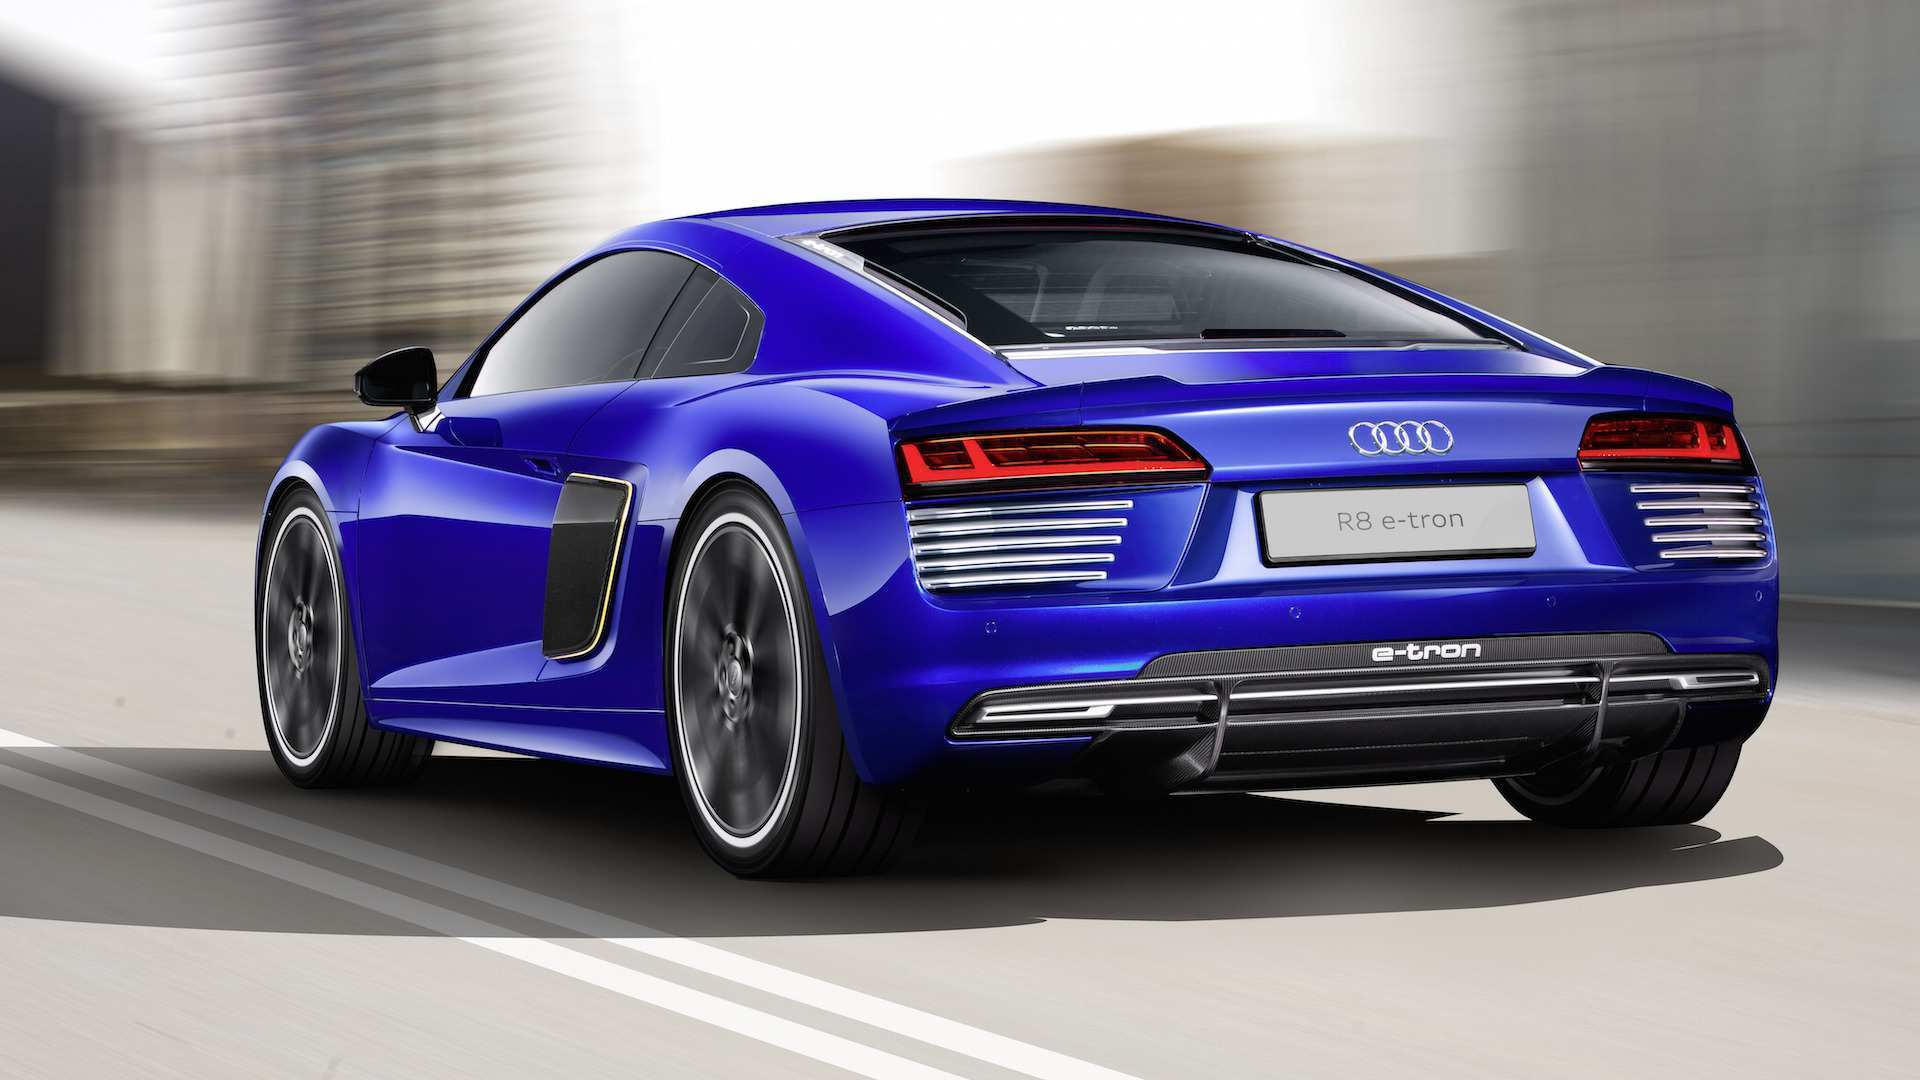 92 Concept of 2020 Audi R8 E Tron Pictures for 2020 Audi R8 E Tron